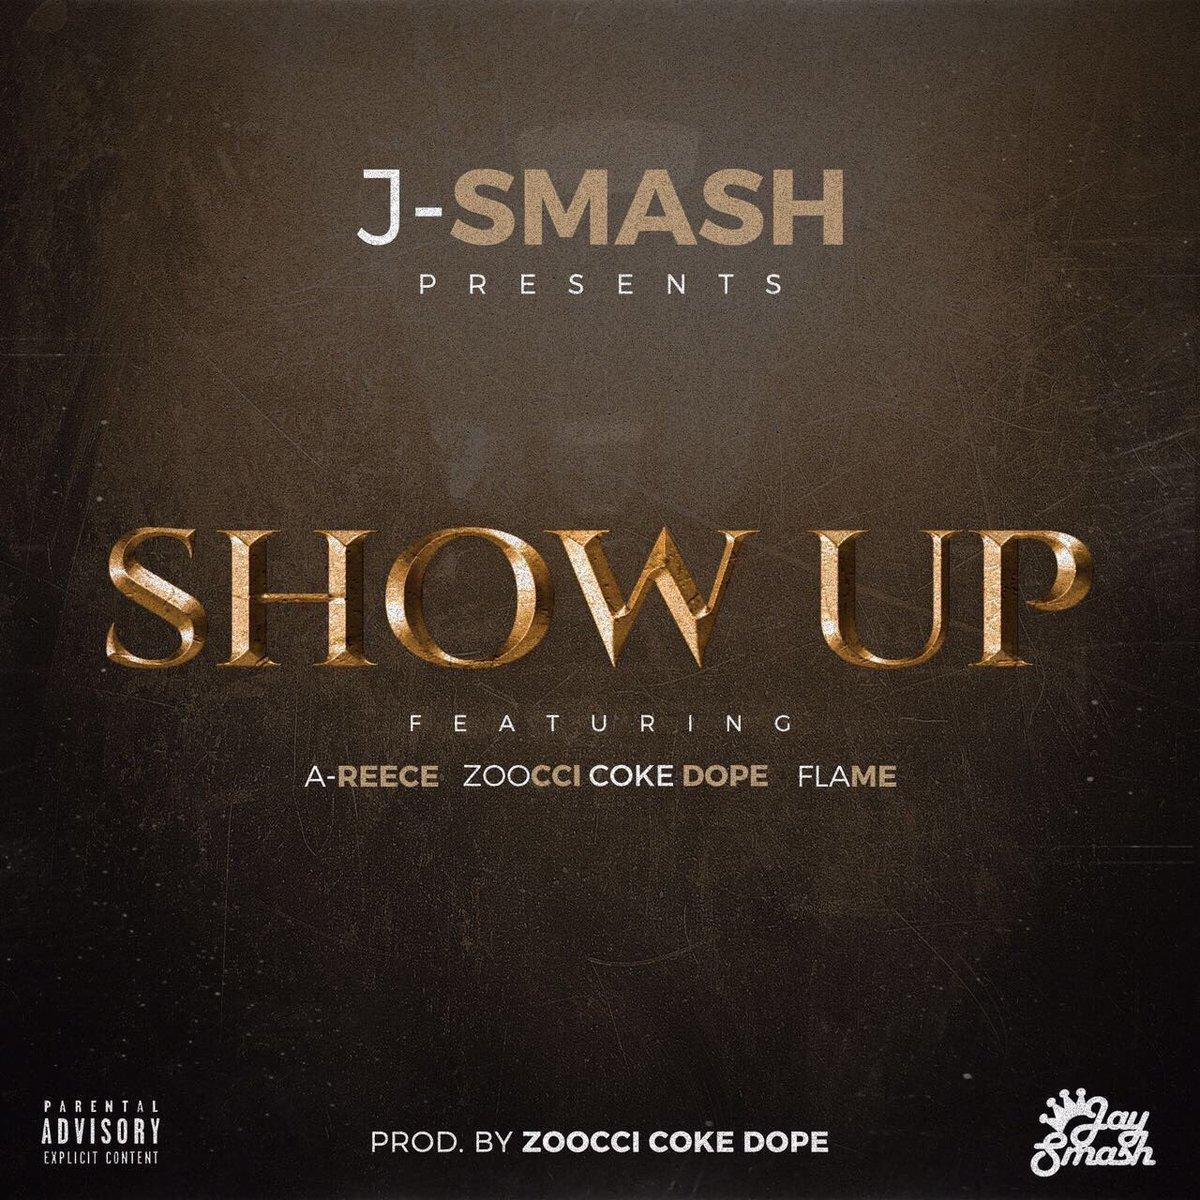 Listen to J-Smash's New 'Show Up' Banger Featuring A-Reece, Zoocci Coke Dope & Flame C7HEFB3XQAA0IFH